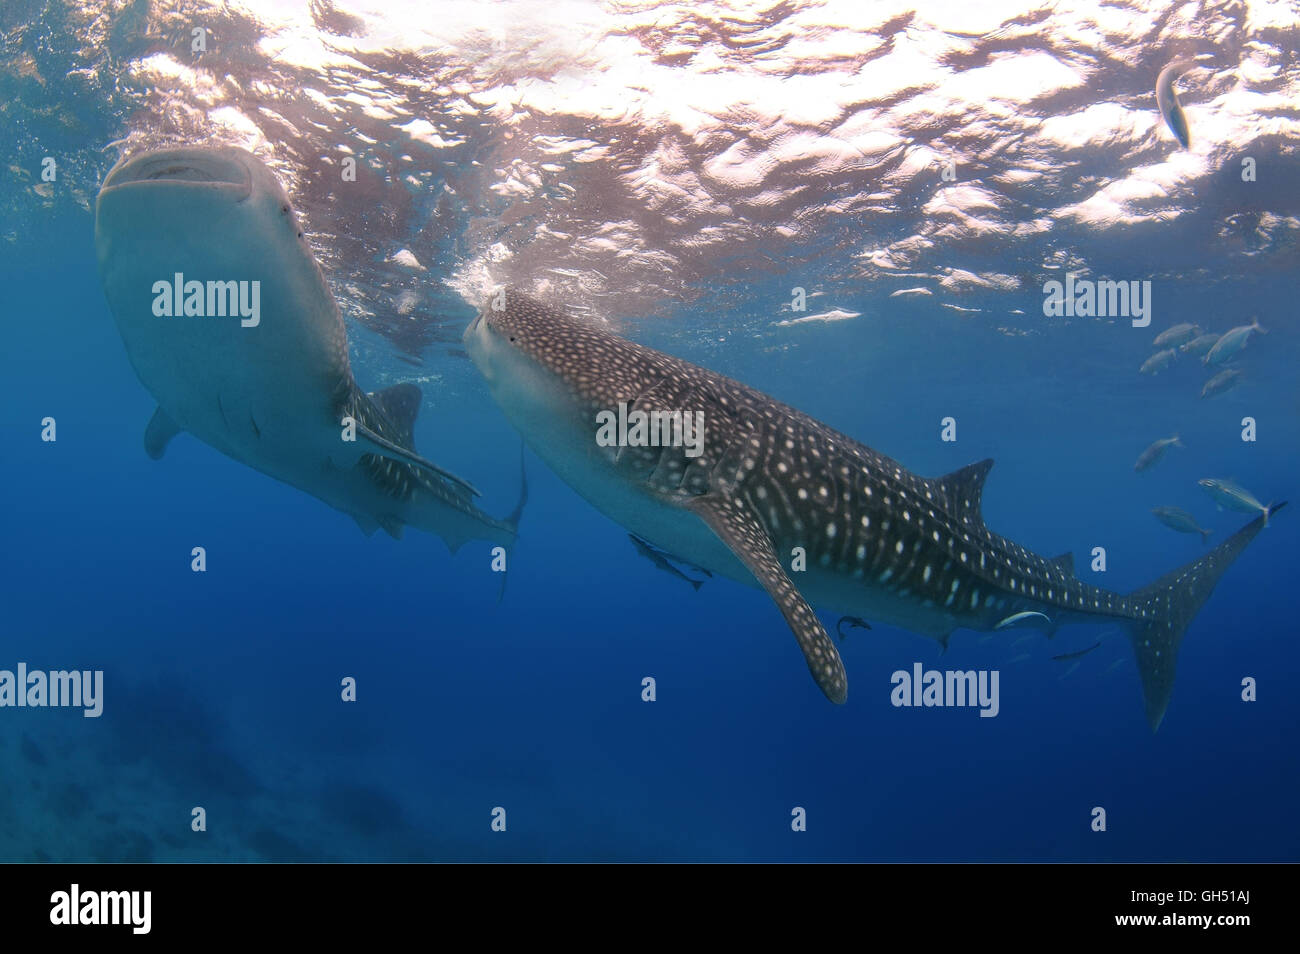 Two Whale shark or basking shark (Rhincodon typus) Indo-Pacific, Philippines, Southeast Asia - Stock Image